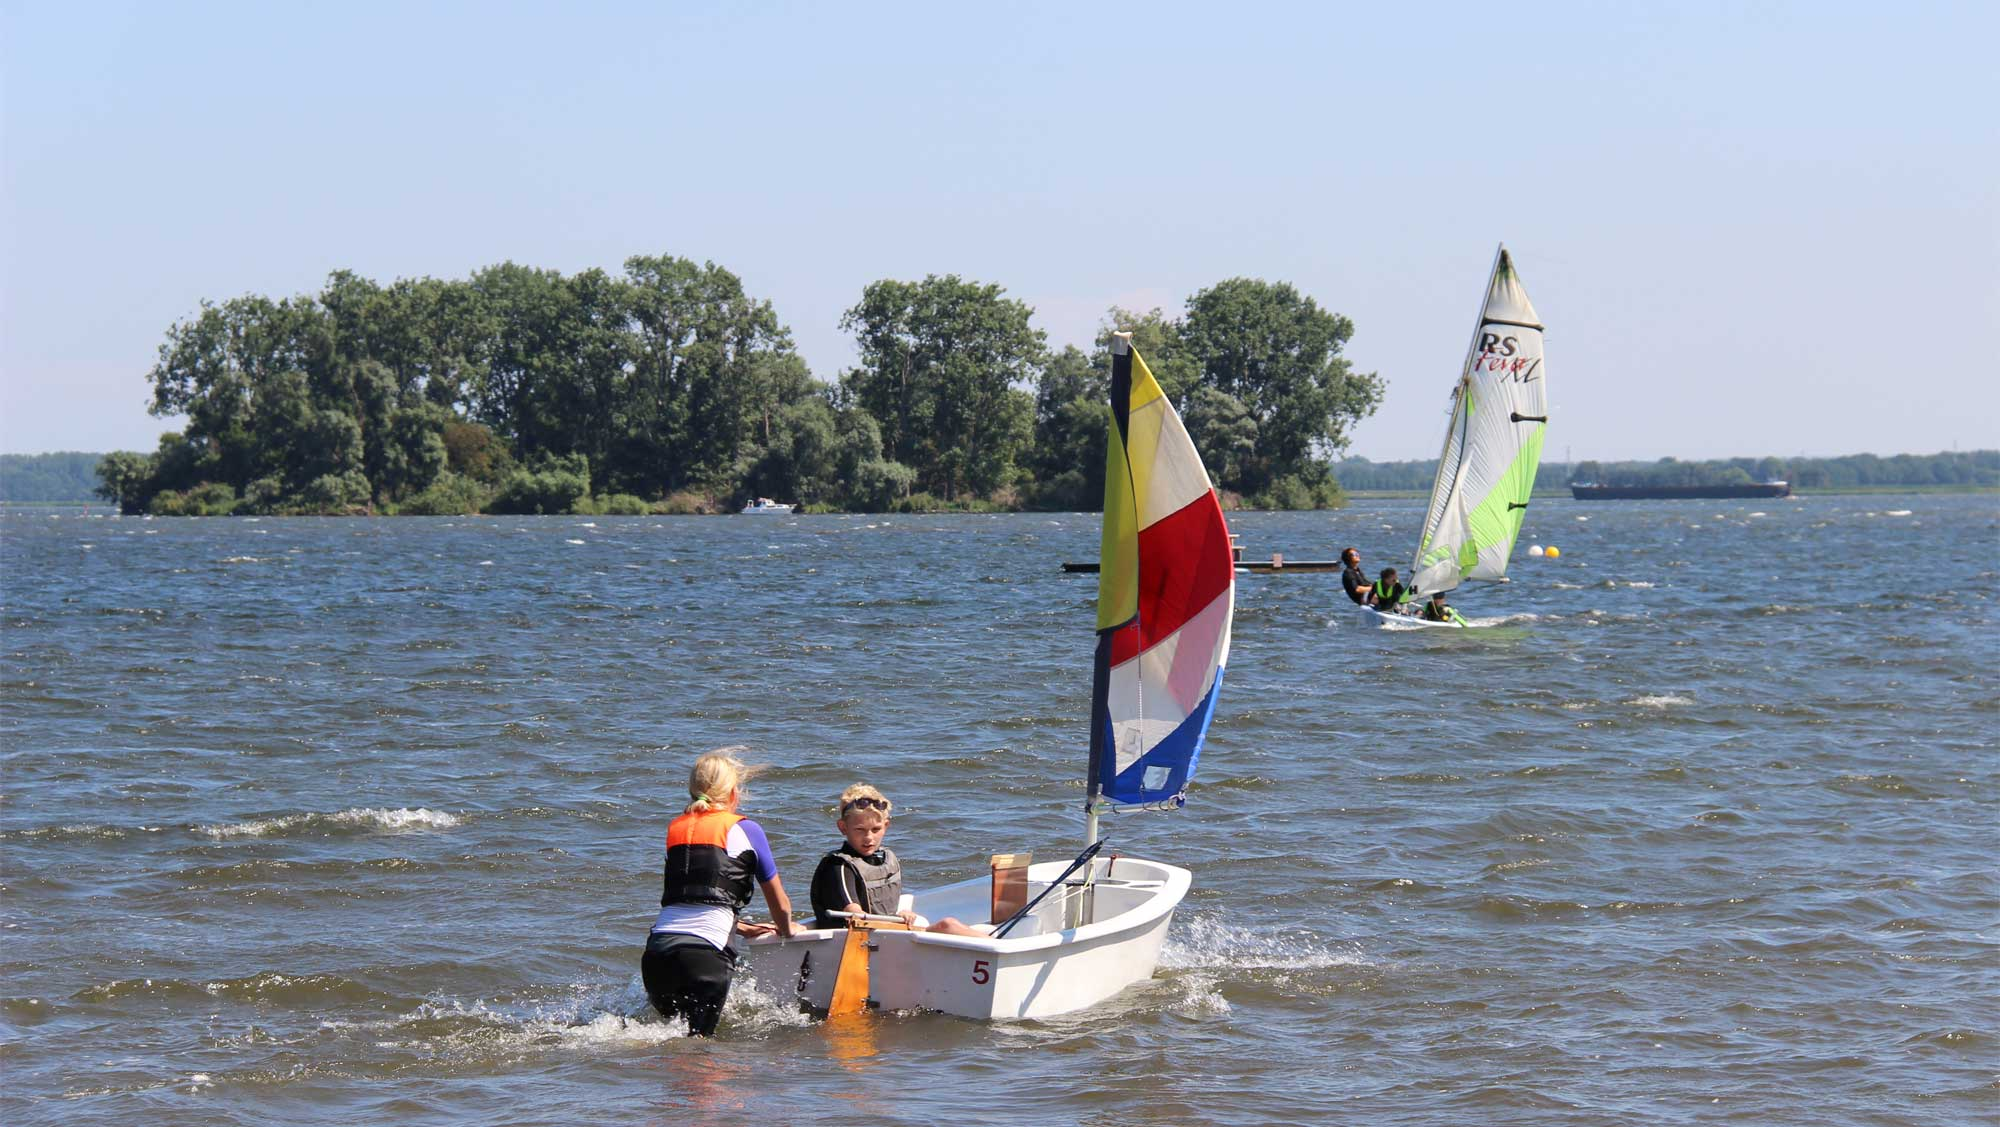 Zeilschool De Randmeren Molecaten Park Flevostrand 06 Optimist